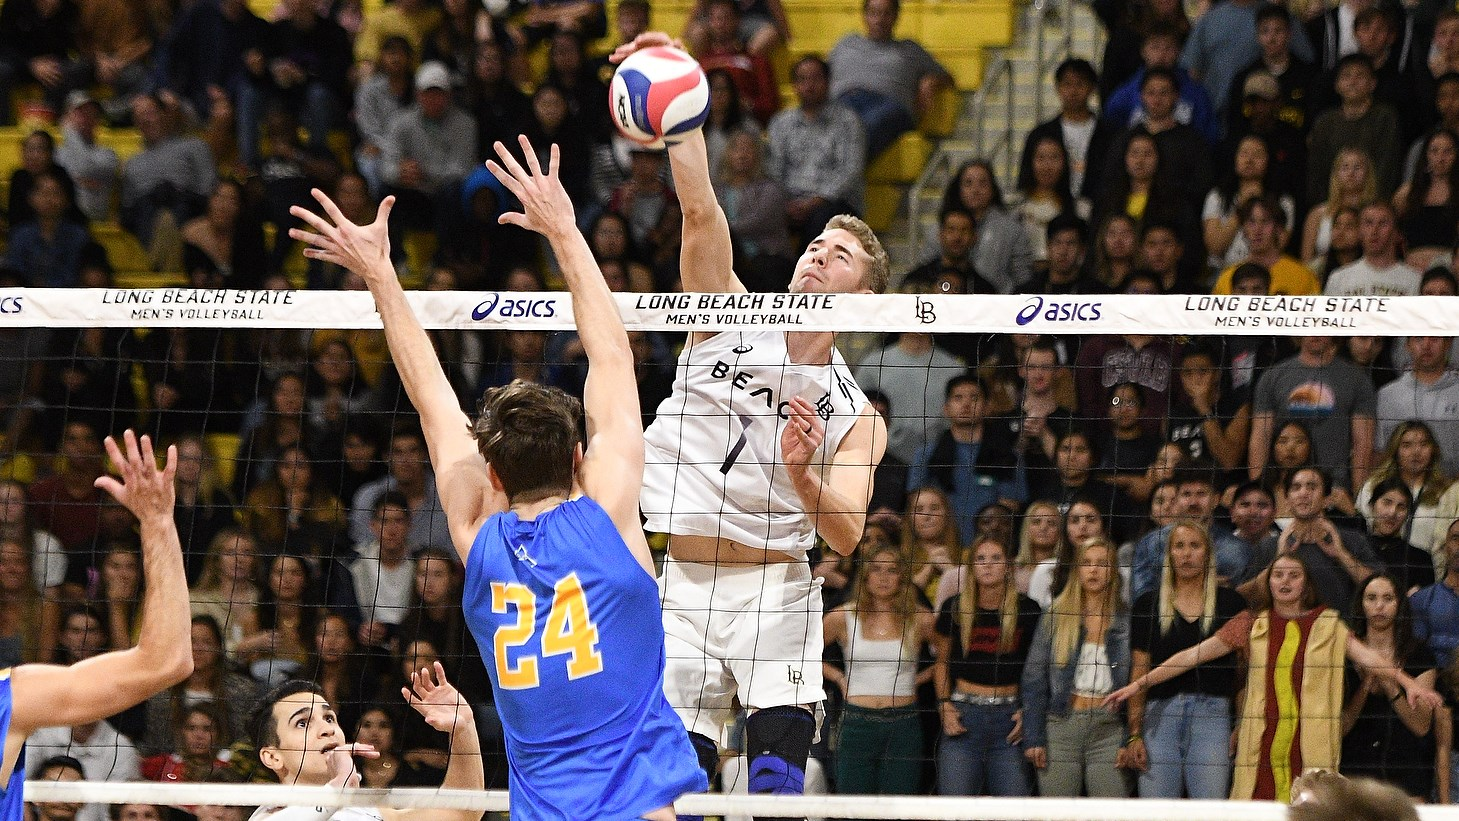 Shane Holdaway Men S Volleyball Long Beach State University Athletics